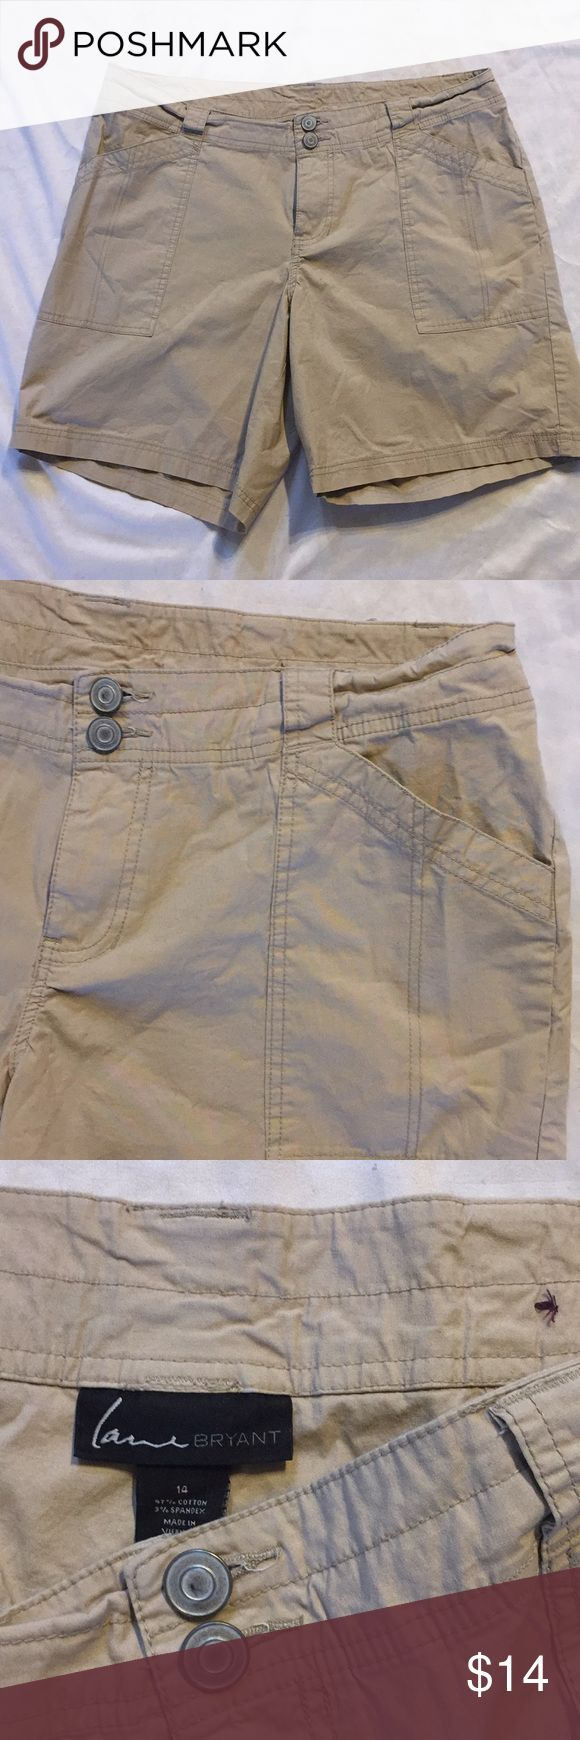 Lane Bryant Cargo Shorts Layne Bryant cargo shorts.Beige in color.Button and zipper front.Loops For belt.Four pockets.Very good condition. Lane Bryant Shorts Cargos